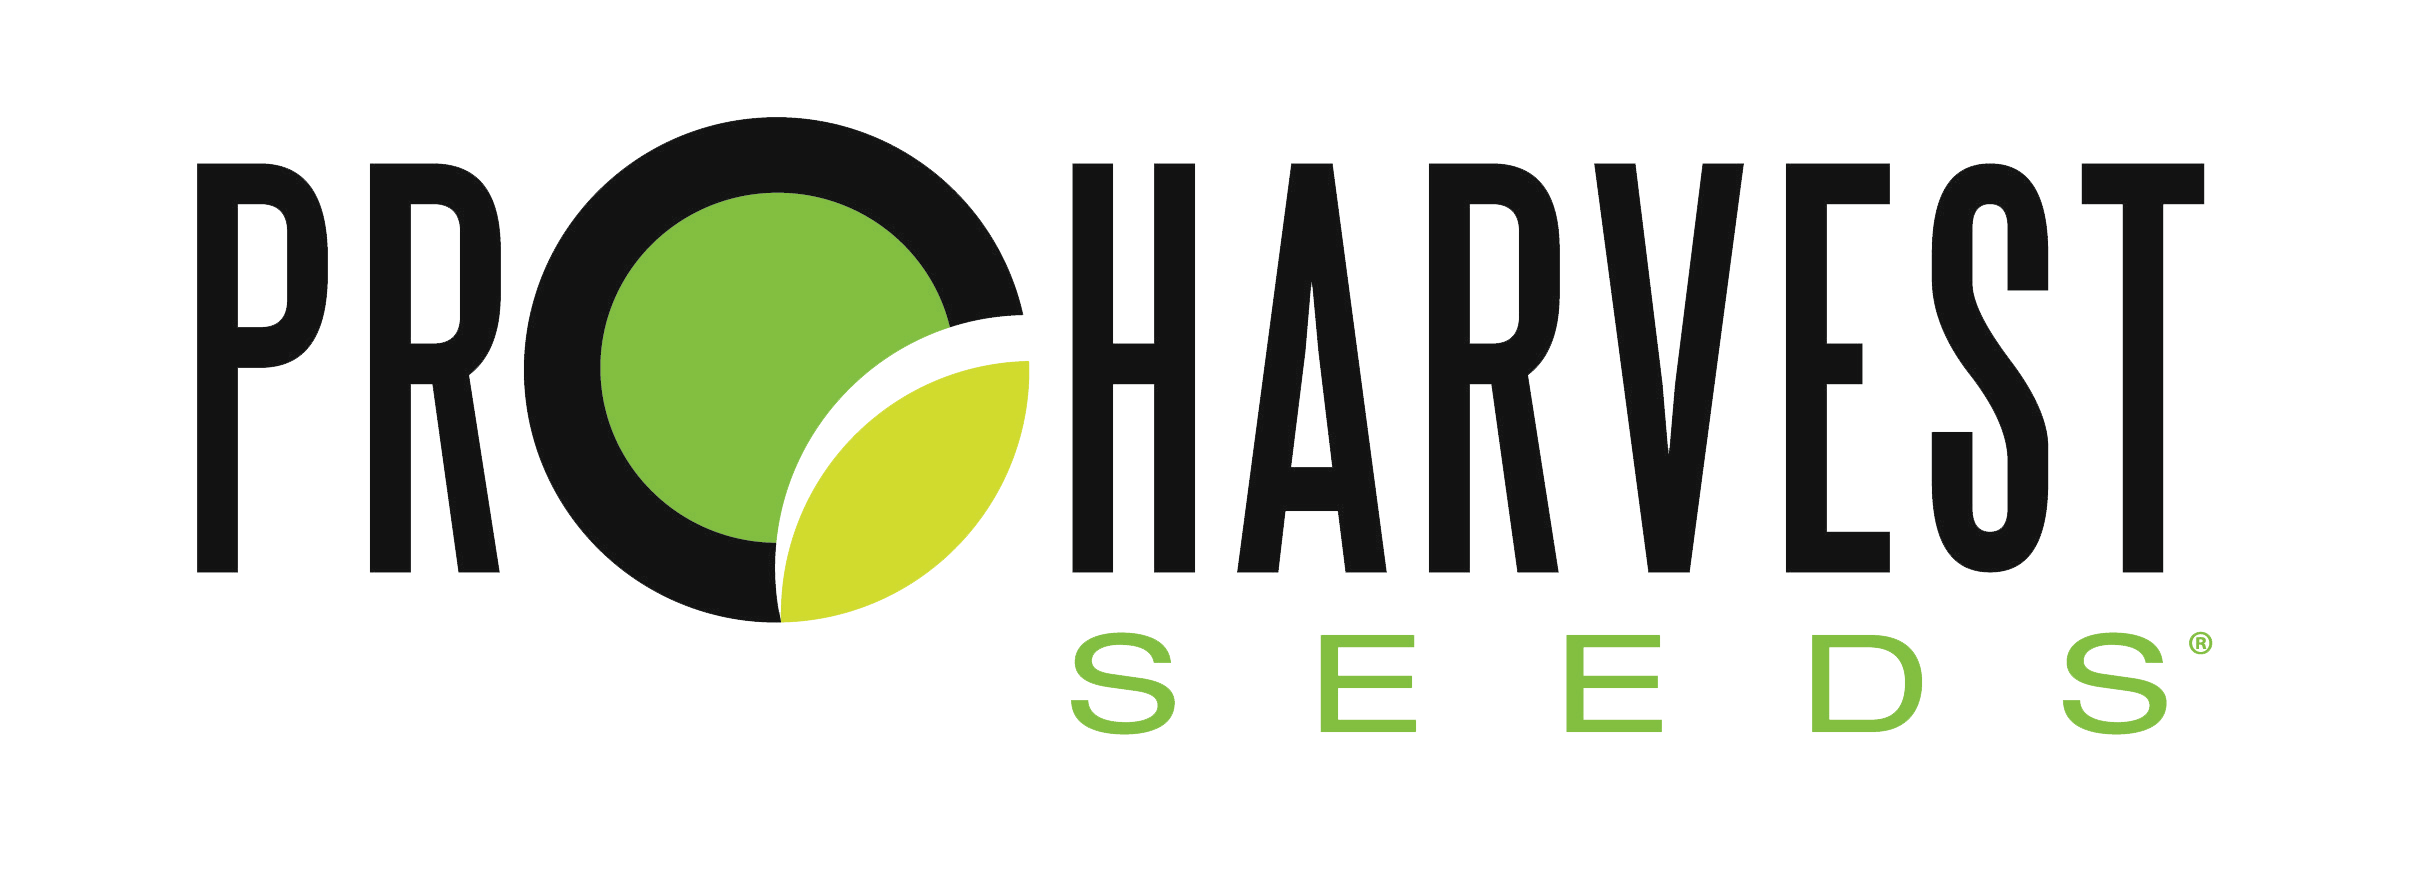 Copy_of_ProHarvestLogoRegisteredCMYK.png